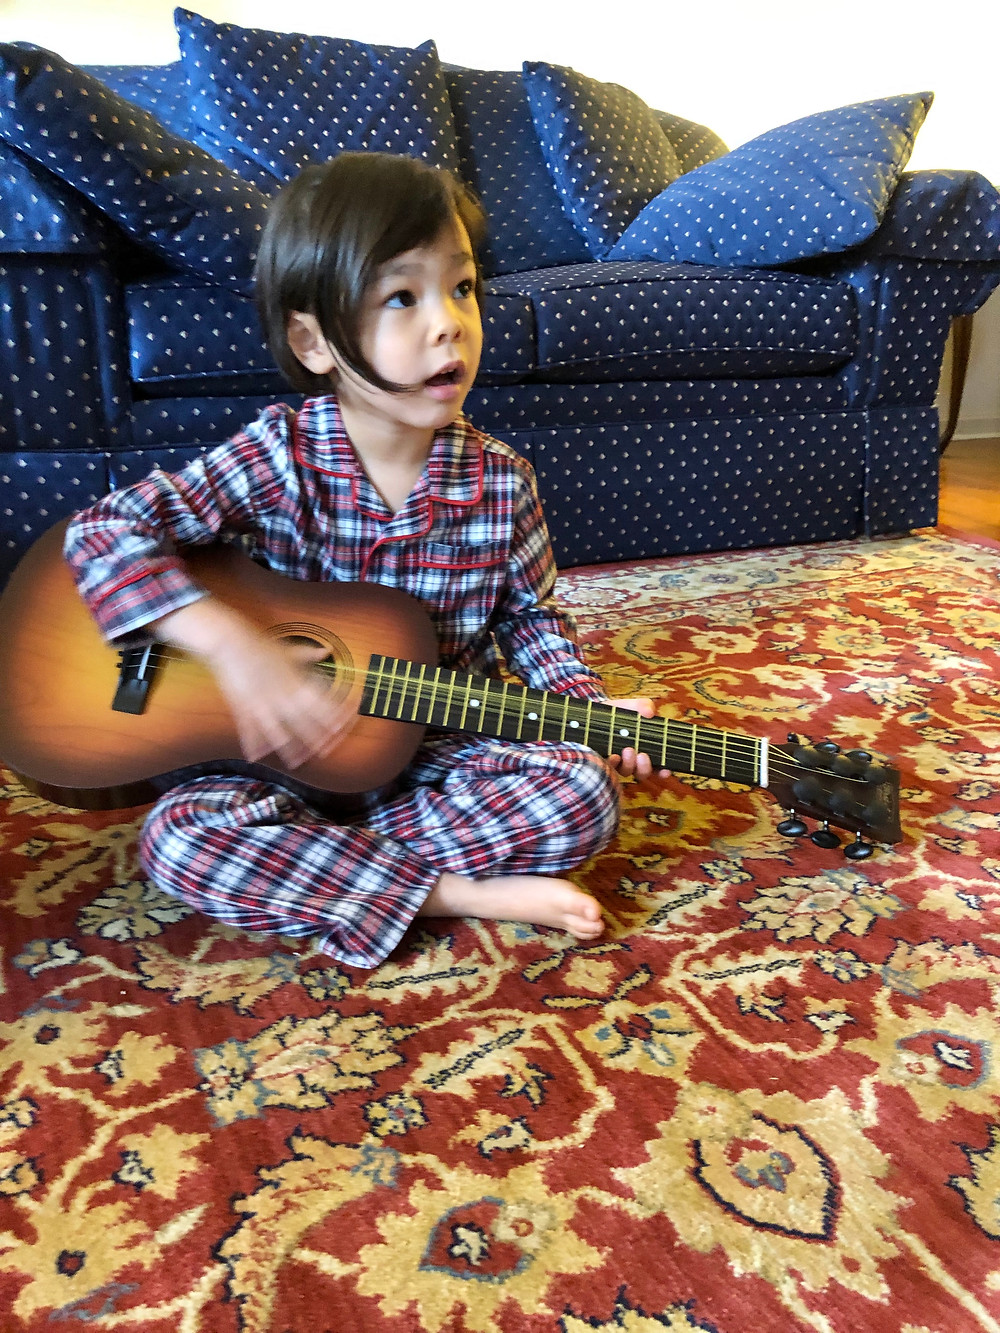 best guitar for kids, best guitar for toddlers, best toddler birthday gifts, best gifts for musical kids